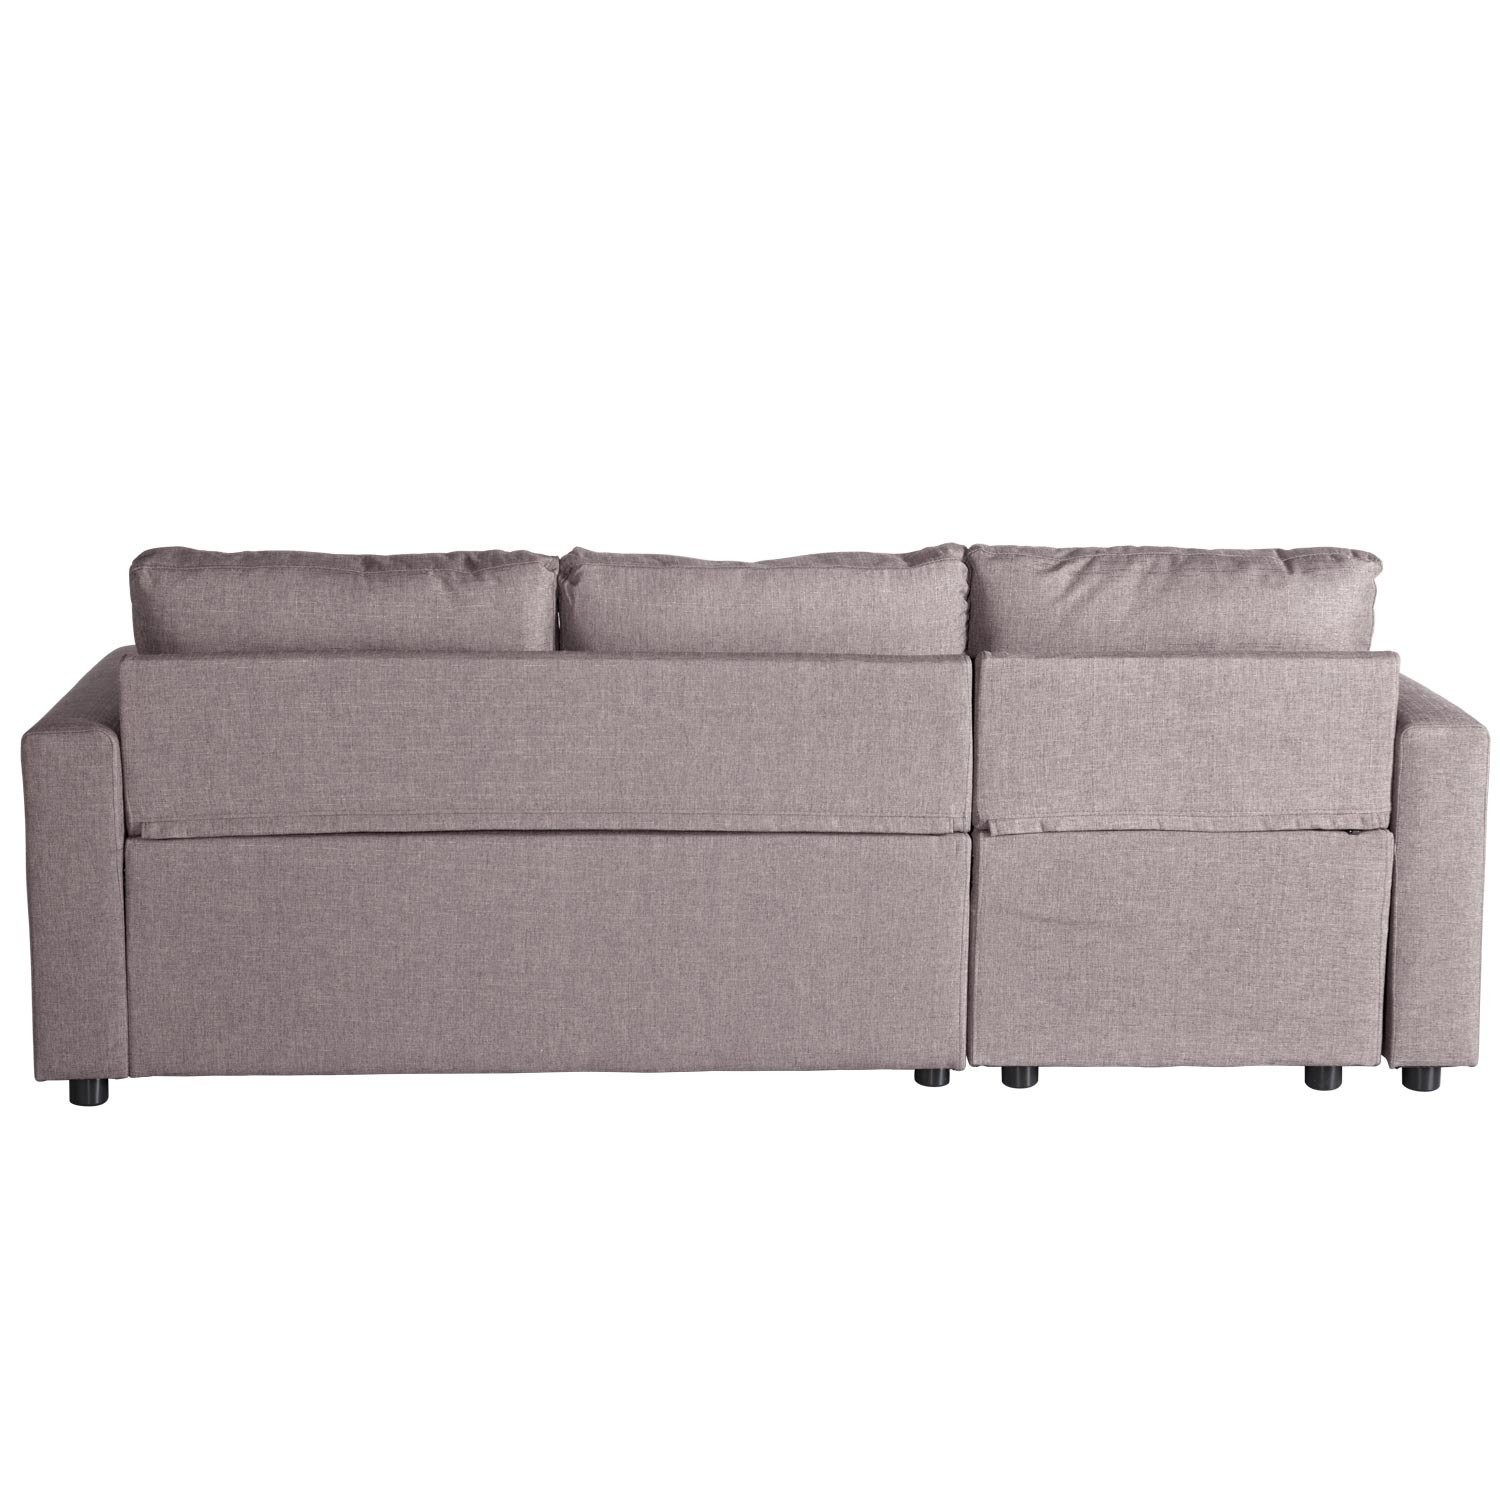 Chaise Longue Cama Baratos Maravilloso Pra Online sofá Cama Chaise Longue Adara Barato Of Chaise Longue Cama Baratos Perfecto sofa Chaise Longue Barato Long with 1 Cama Segunda Mano